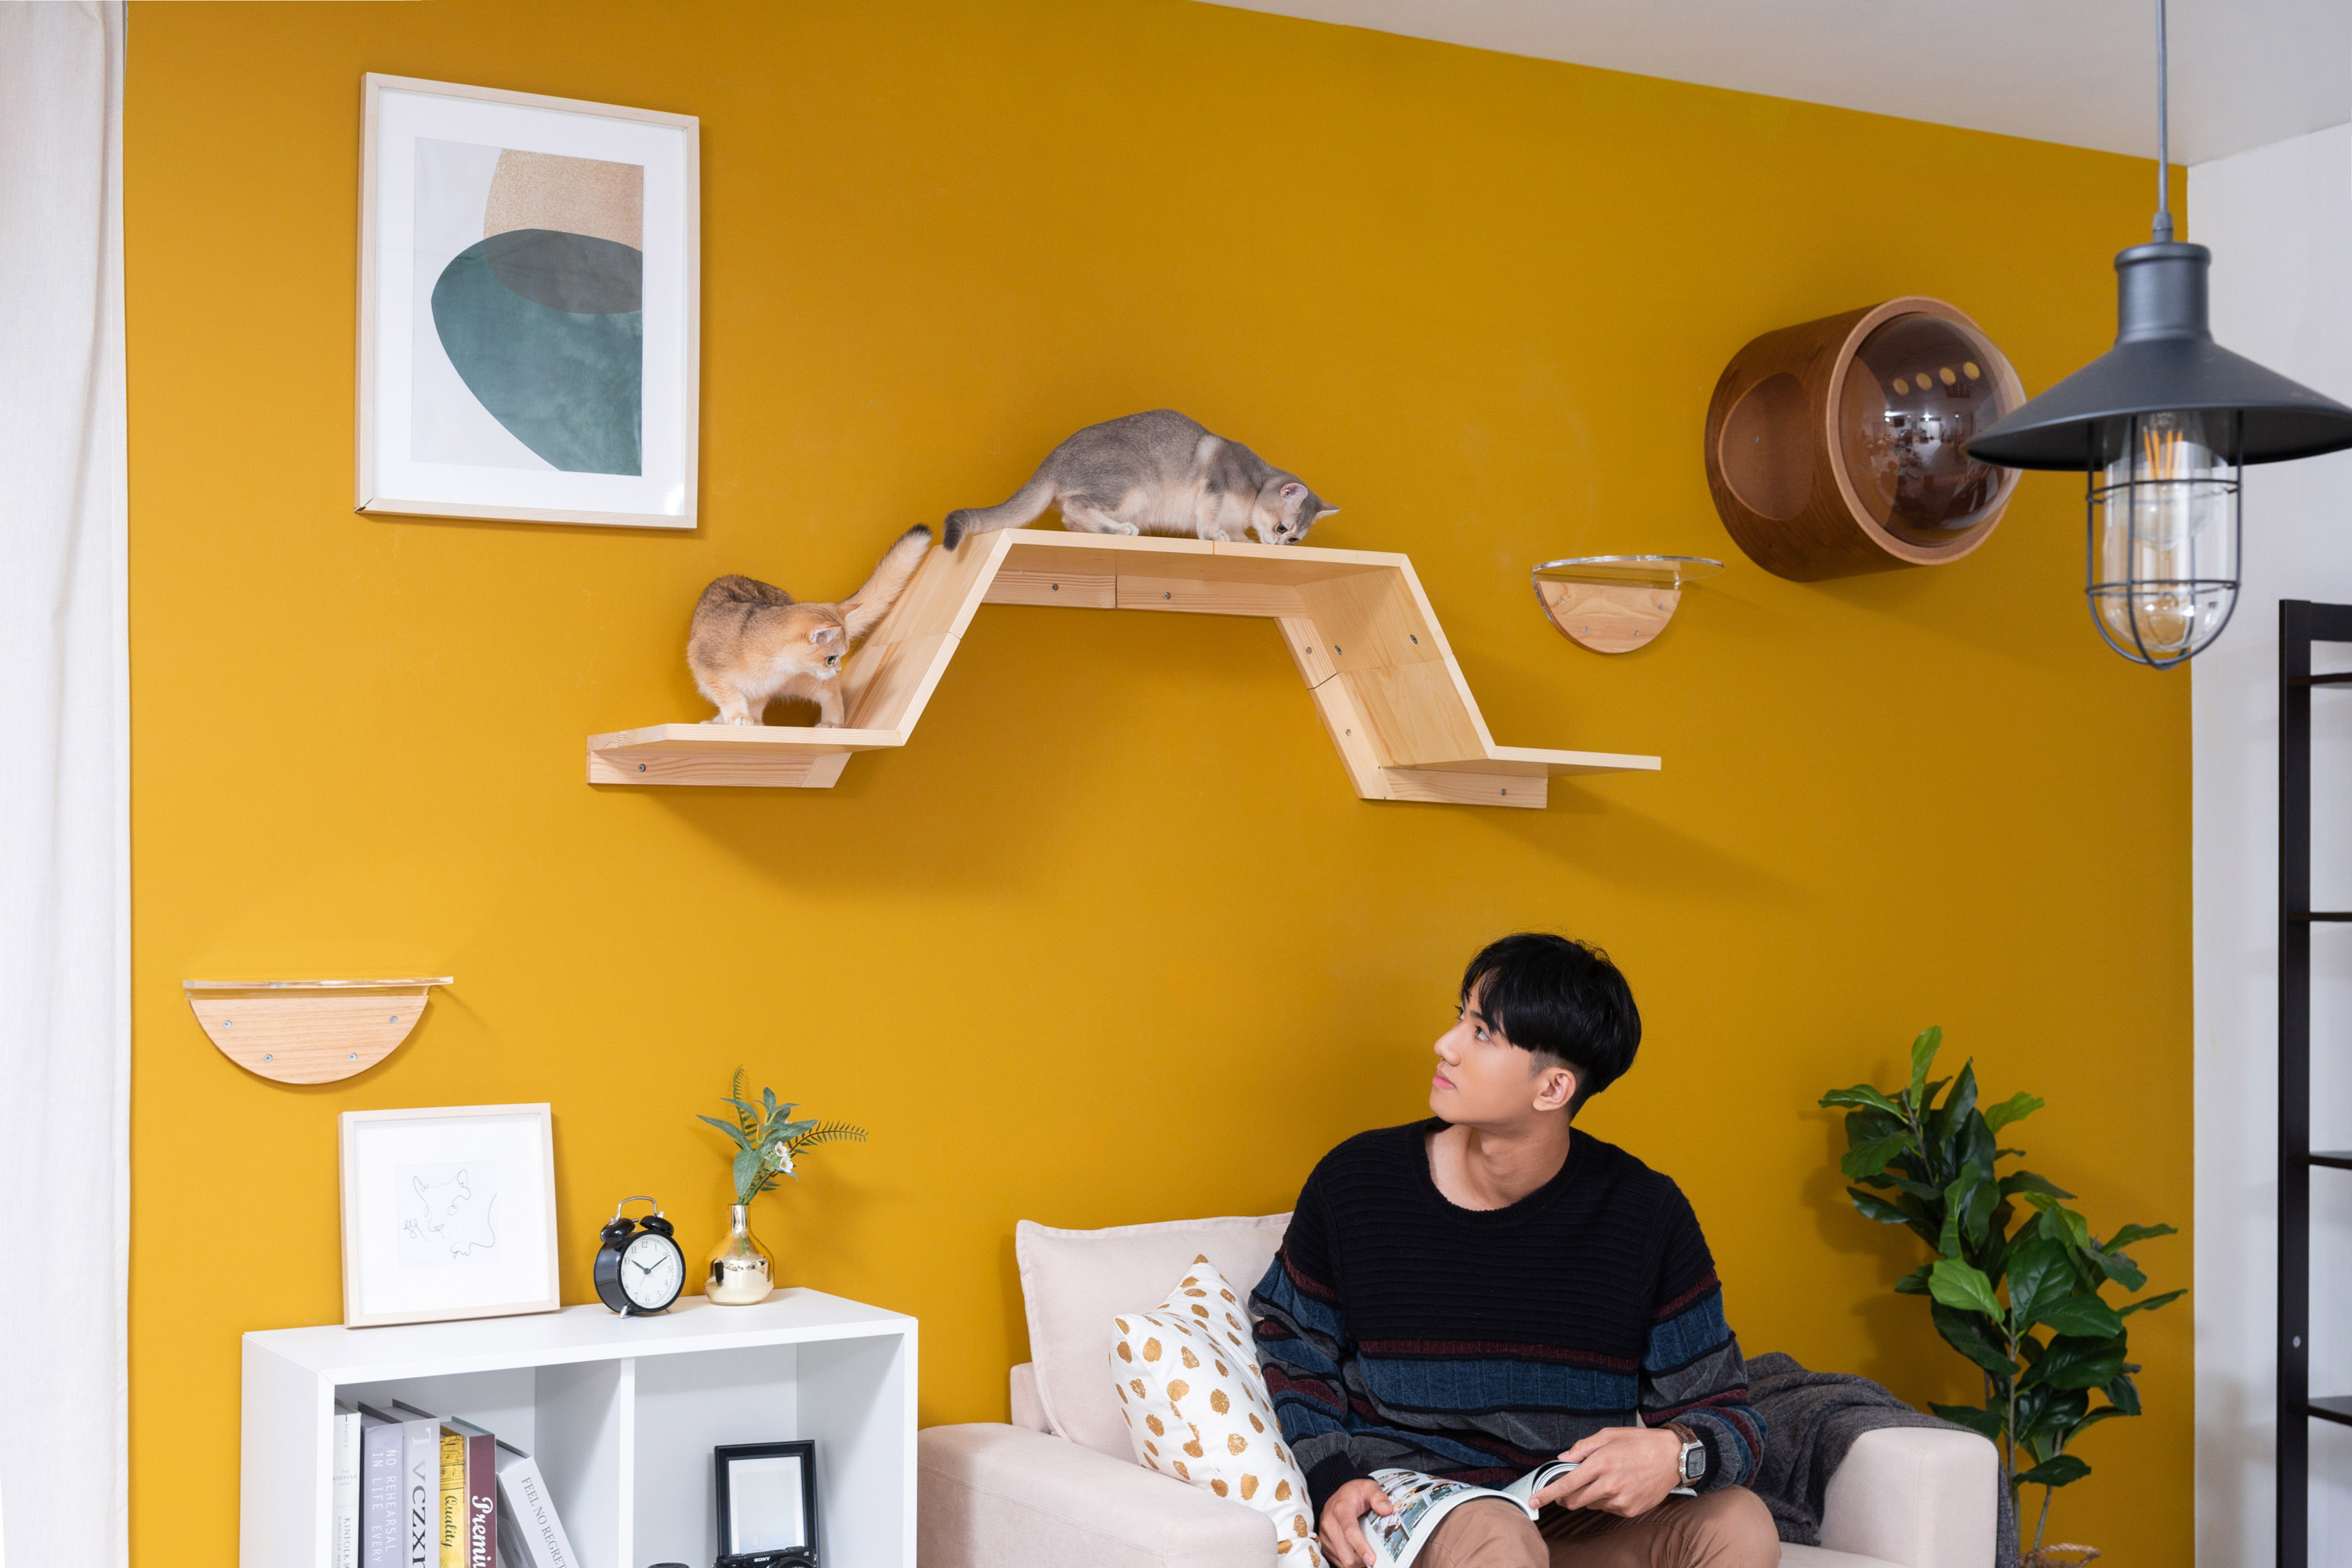 a man is watching the cats who are play on the floating cat shelves.The wall-mounted cat shelf is mounted on a yellow wall.